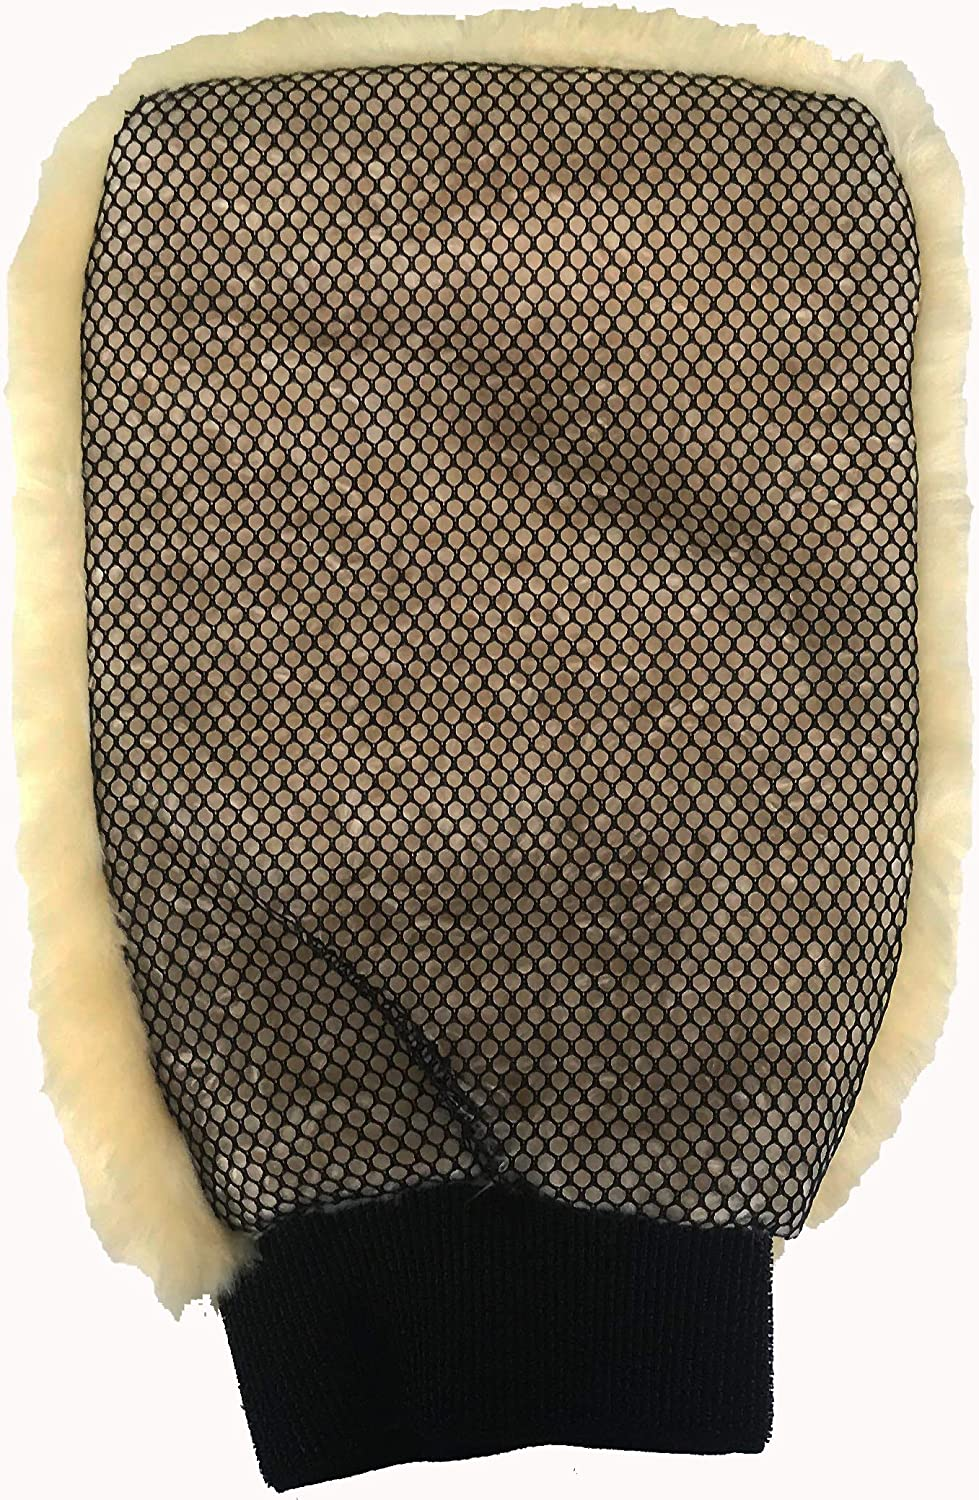 Topteck Signature Luxurious Lambswool Wash Mitt Lambs Wool SPECIAL INTRODUCTORY OFFER PRICE!